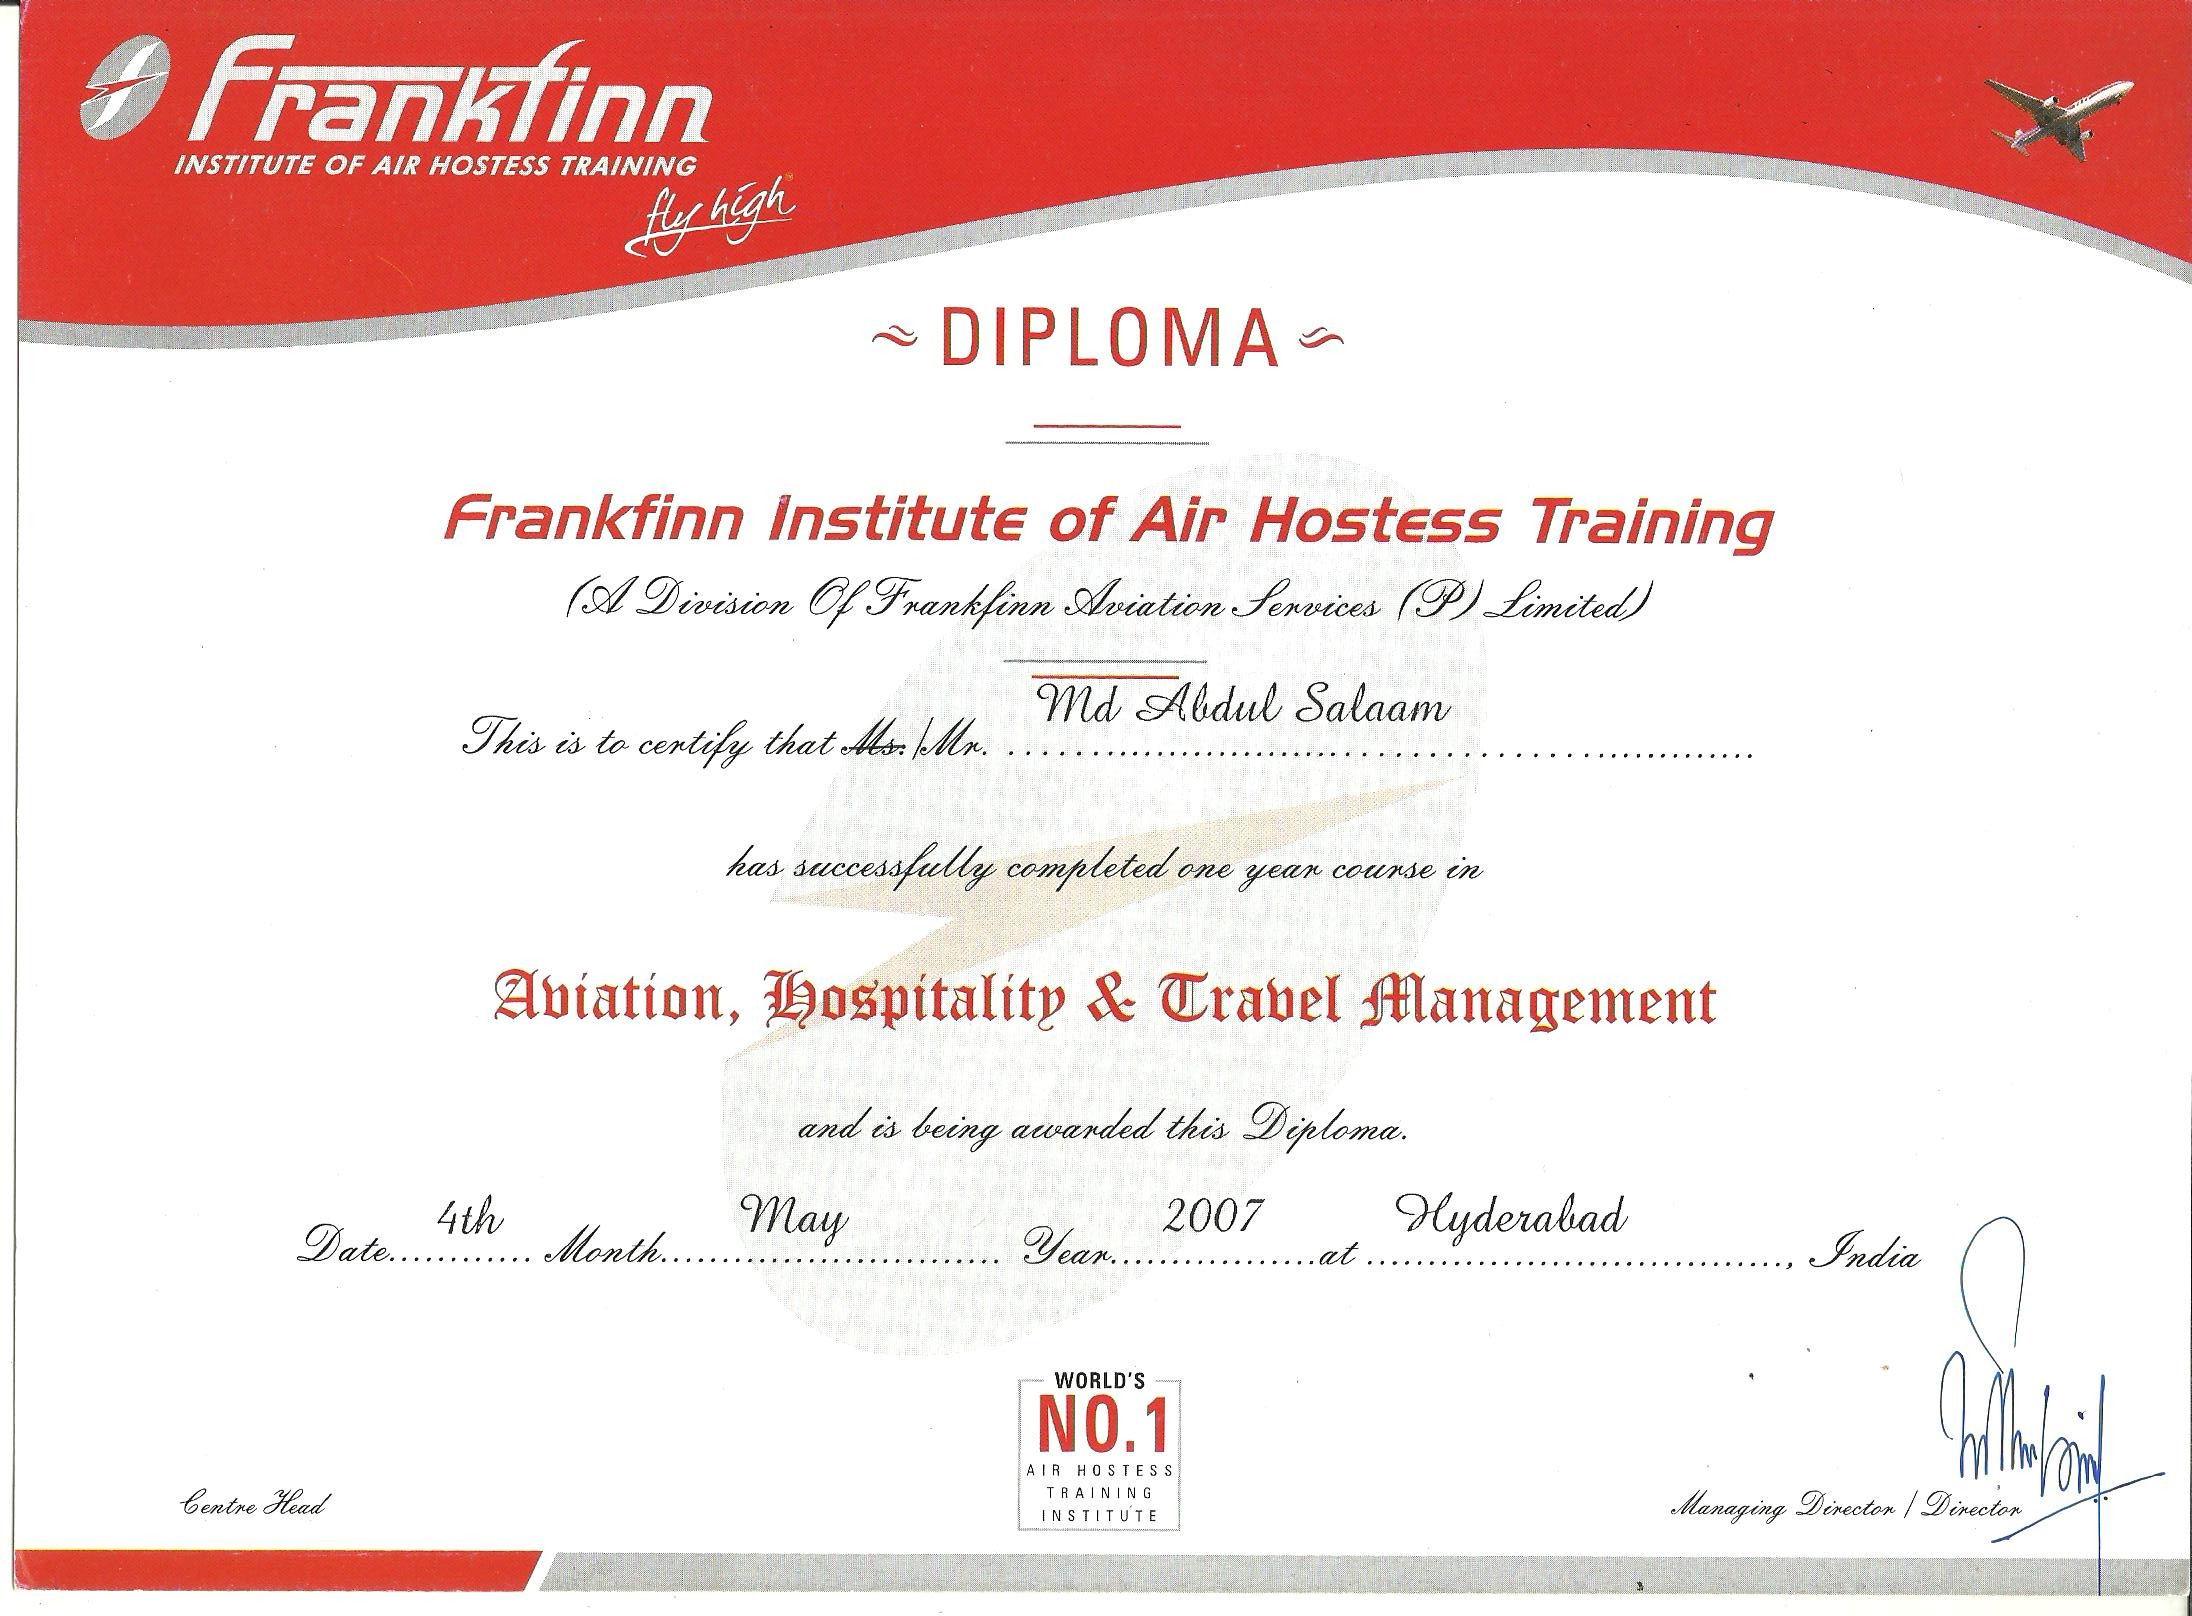 Abdul salam mohammed bayt diploma in aviation hospitality and travel management certificate xflitez Choice Image